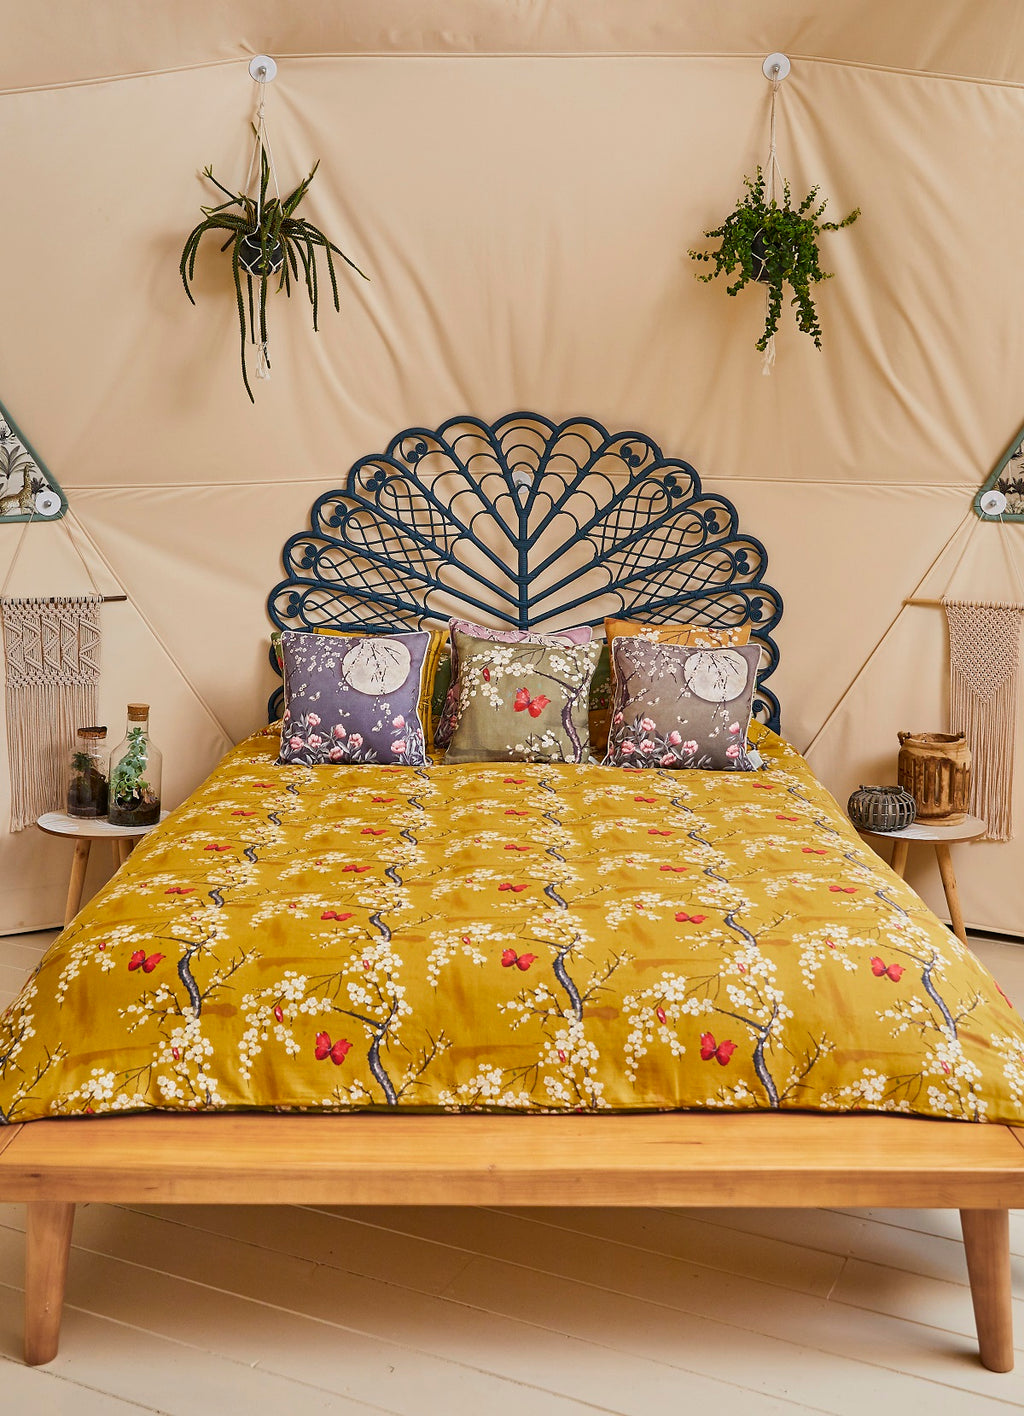 The Chateau Collection Blossom Digi Ochre/Basil Quilt Set by Angel Strawbridge